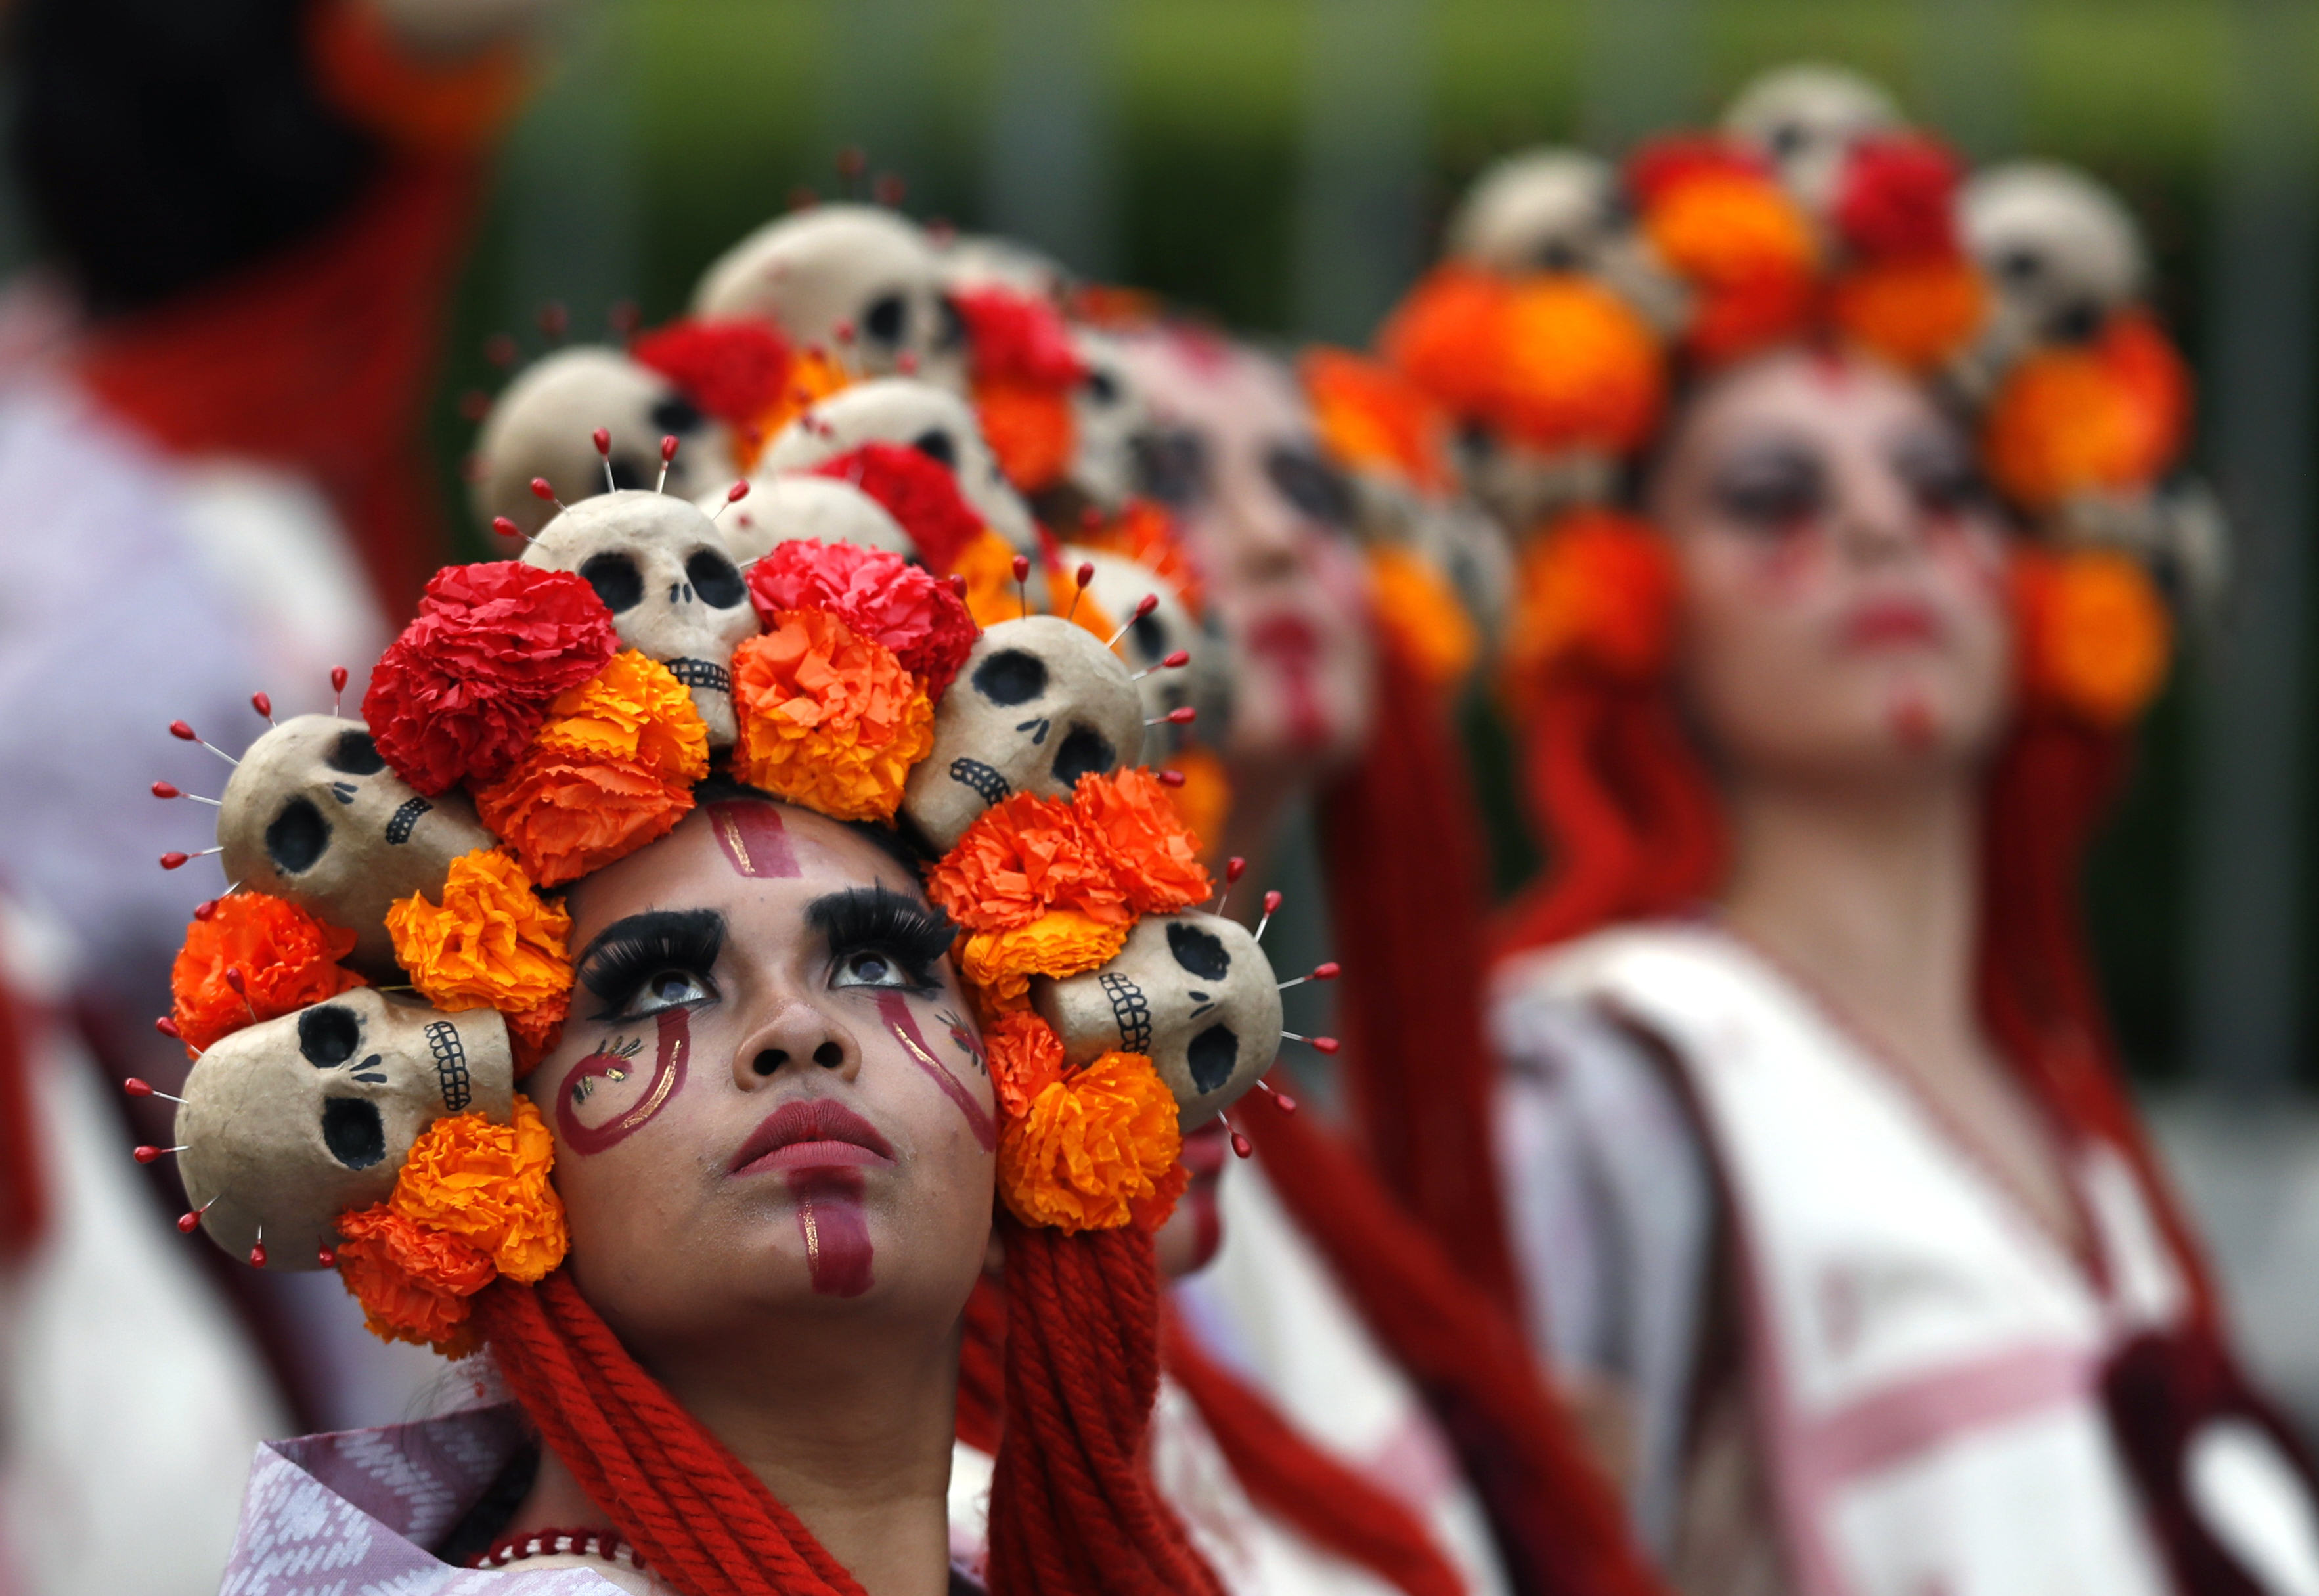 day of the dead is not mexican halloweenits a day where death is reclaimed